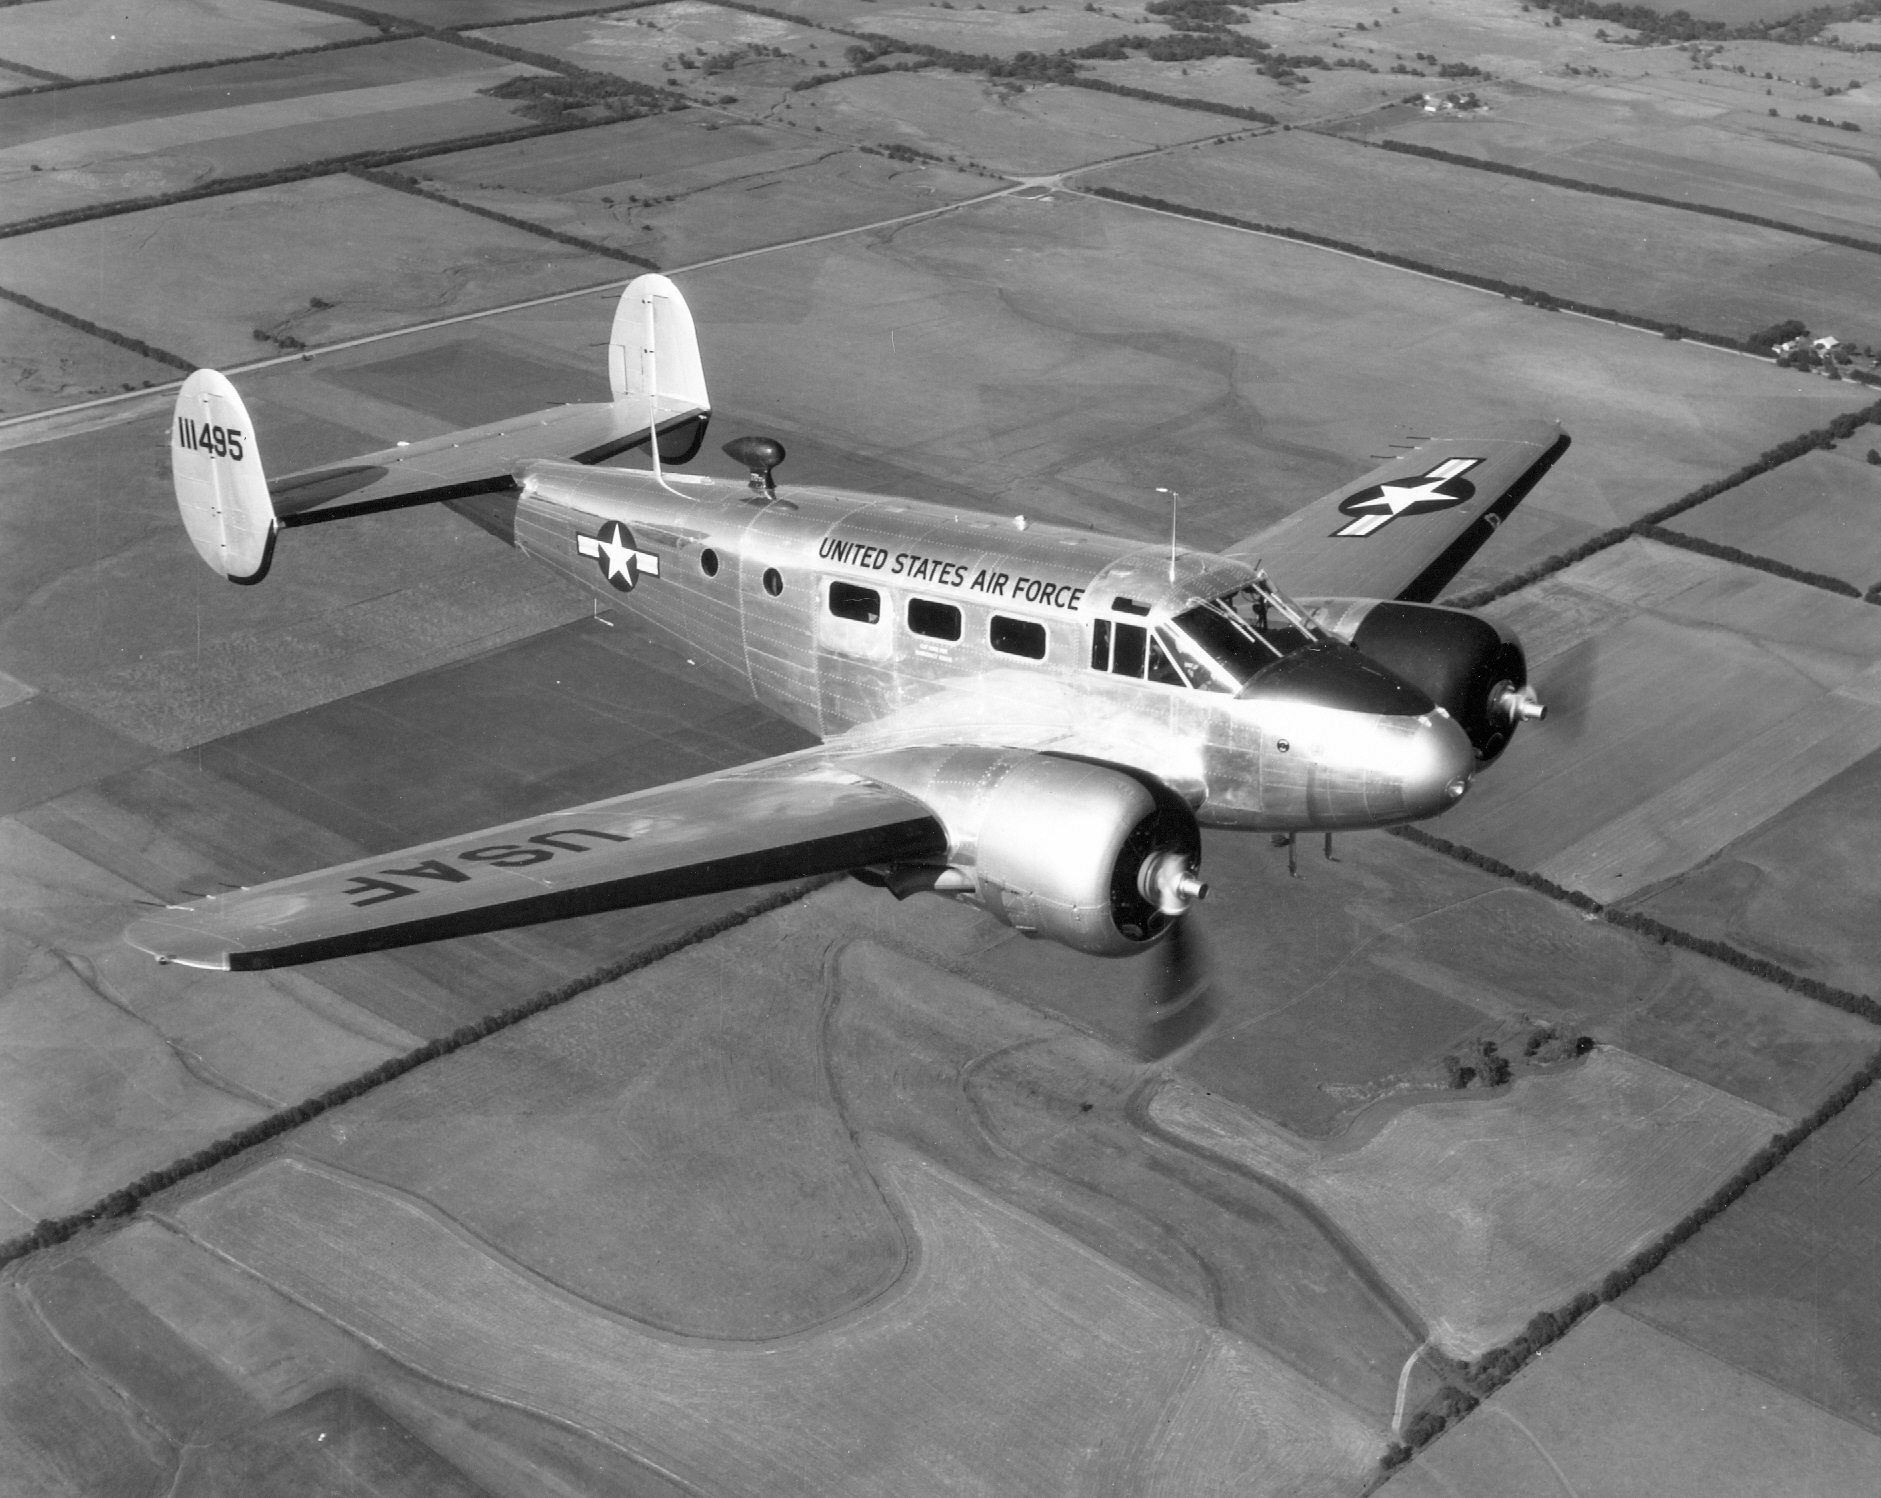 explorers find 1952 us plane wreck in lake ontario the